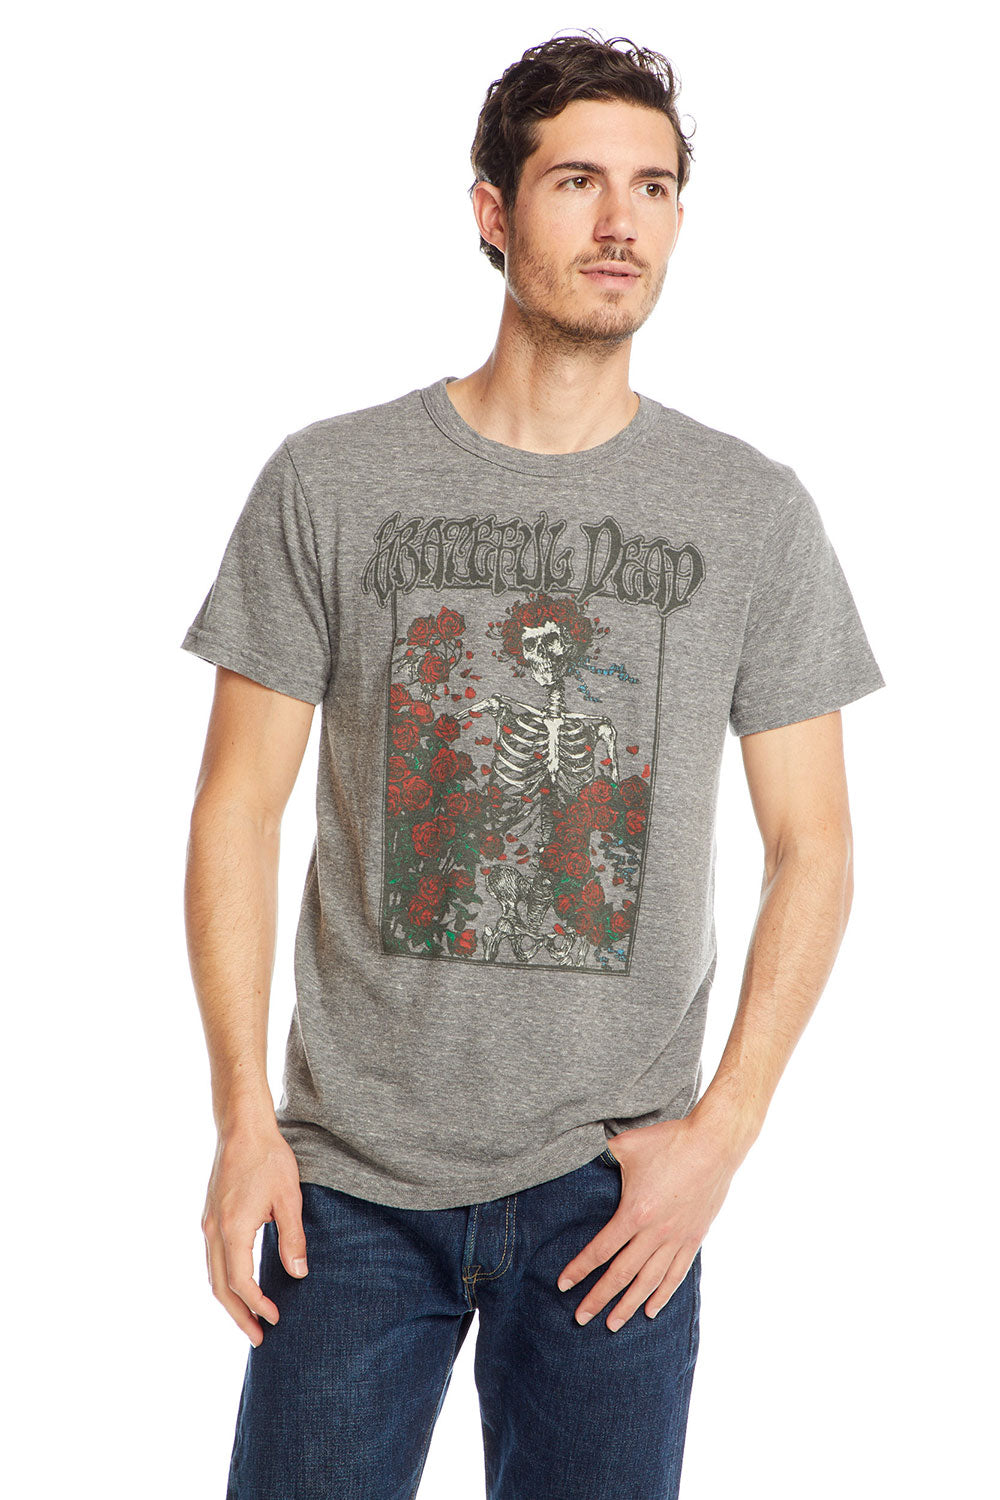 Grateful Dead - Skeleton Roses, MENS, chaserbrand.com,chaser clothing,chaser apparel,chaser los angeles